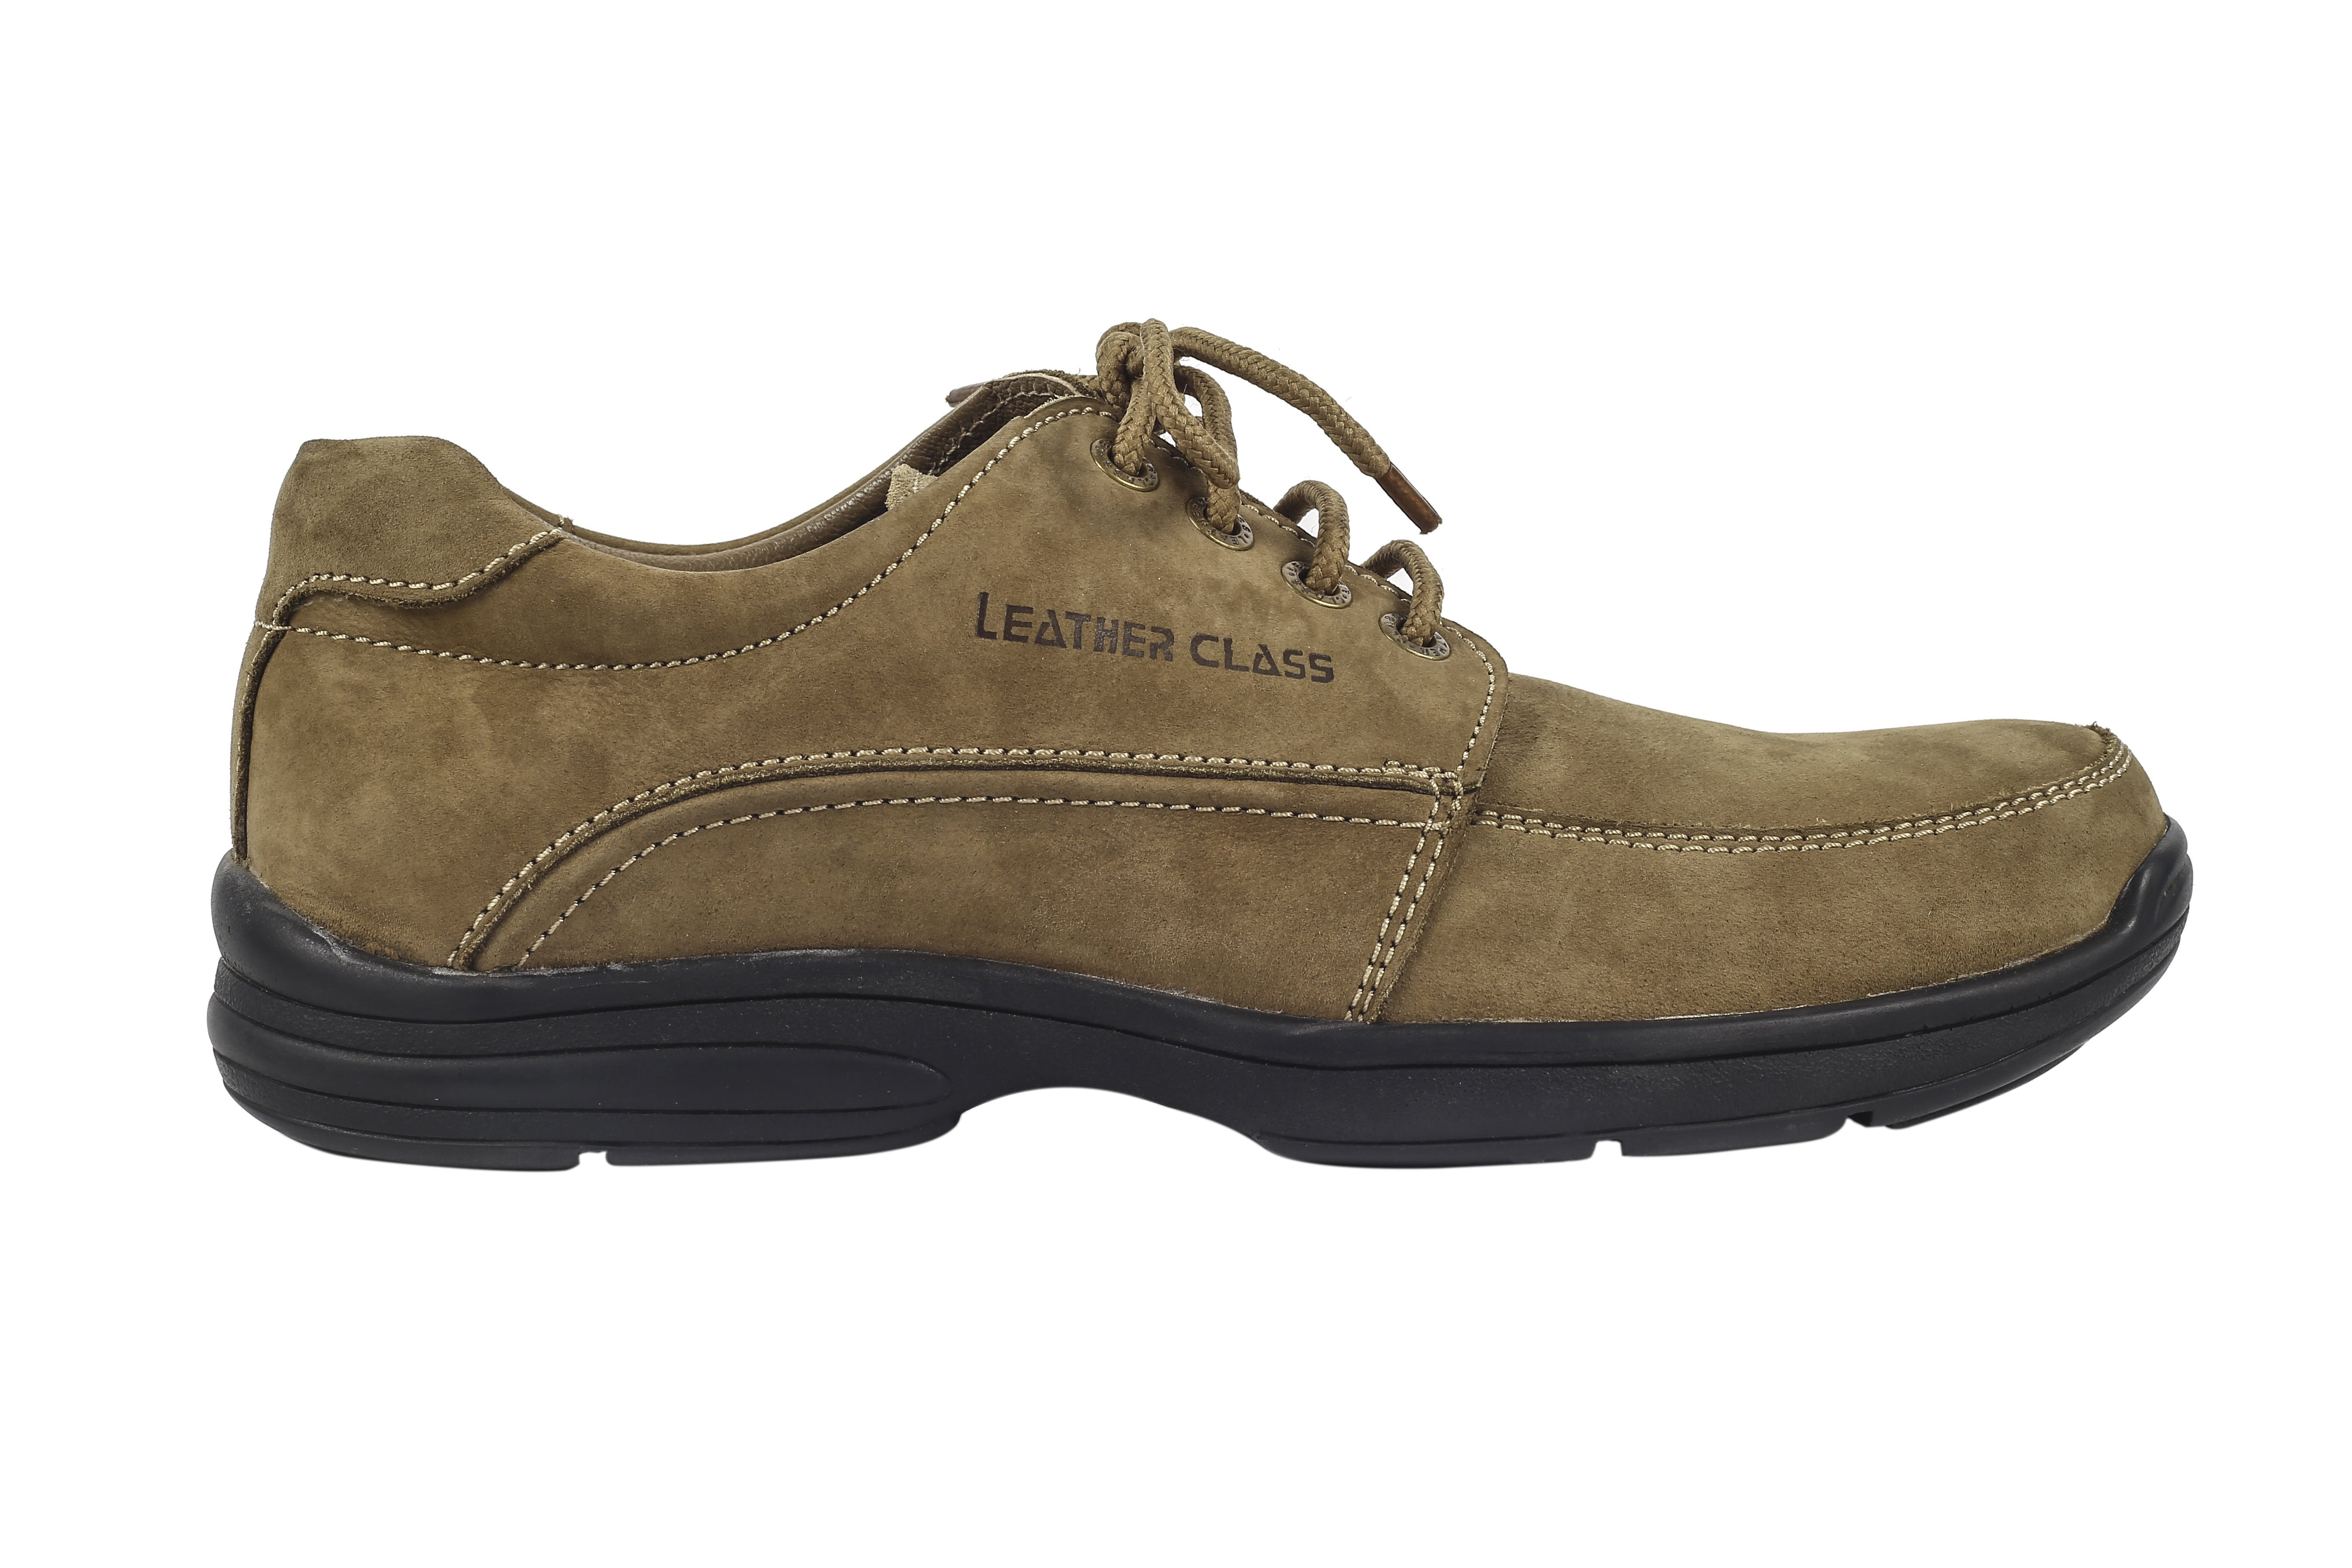 Brown Leather Class Lace-up Shoe